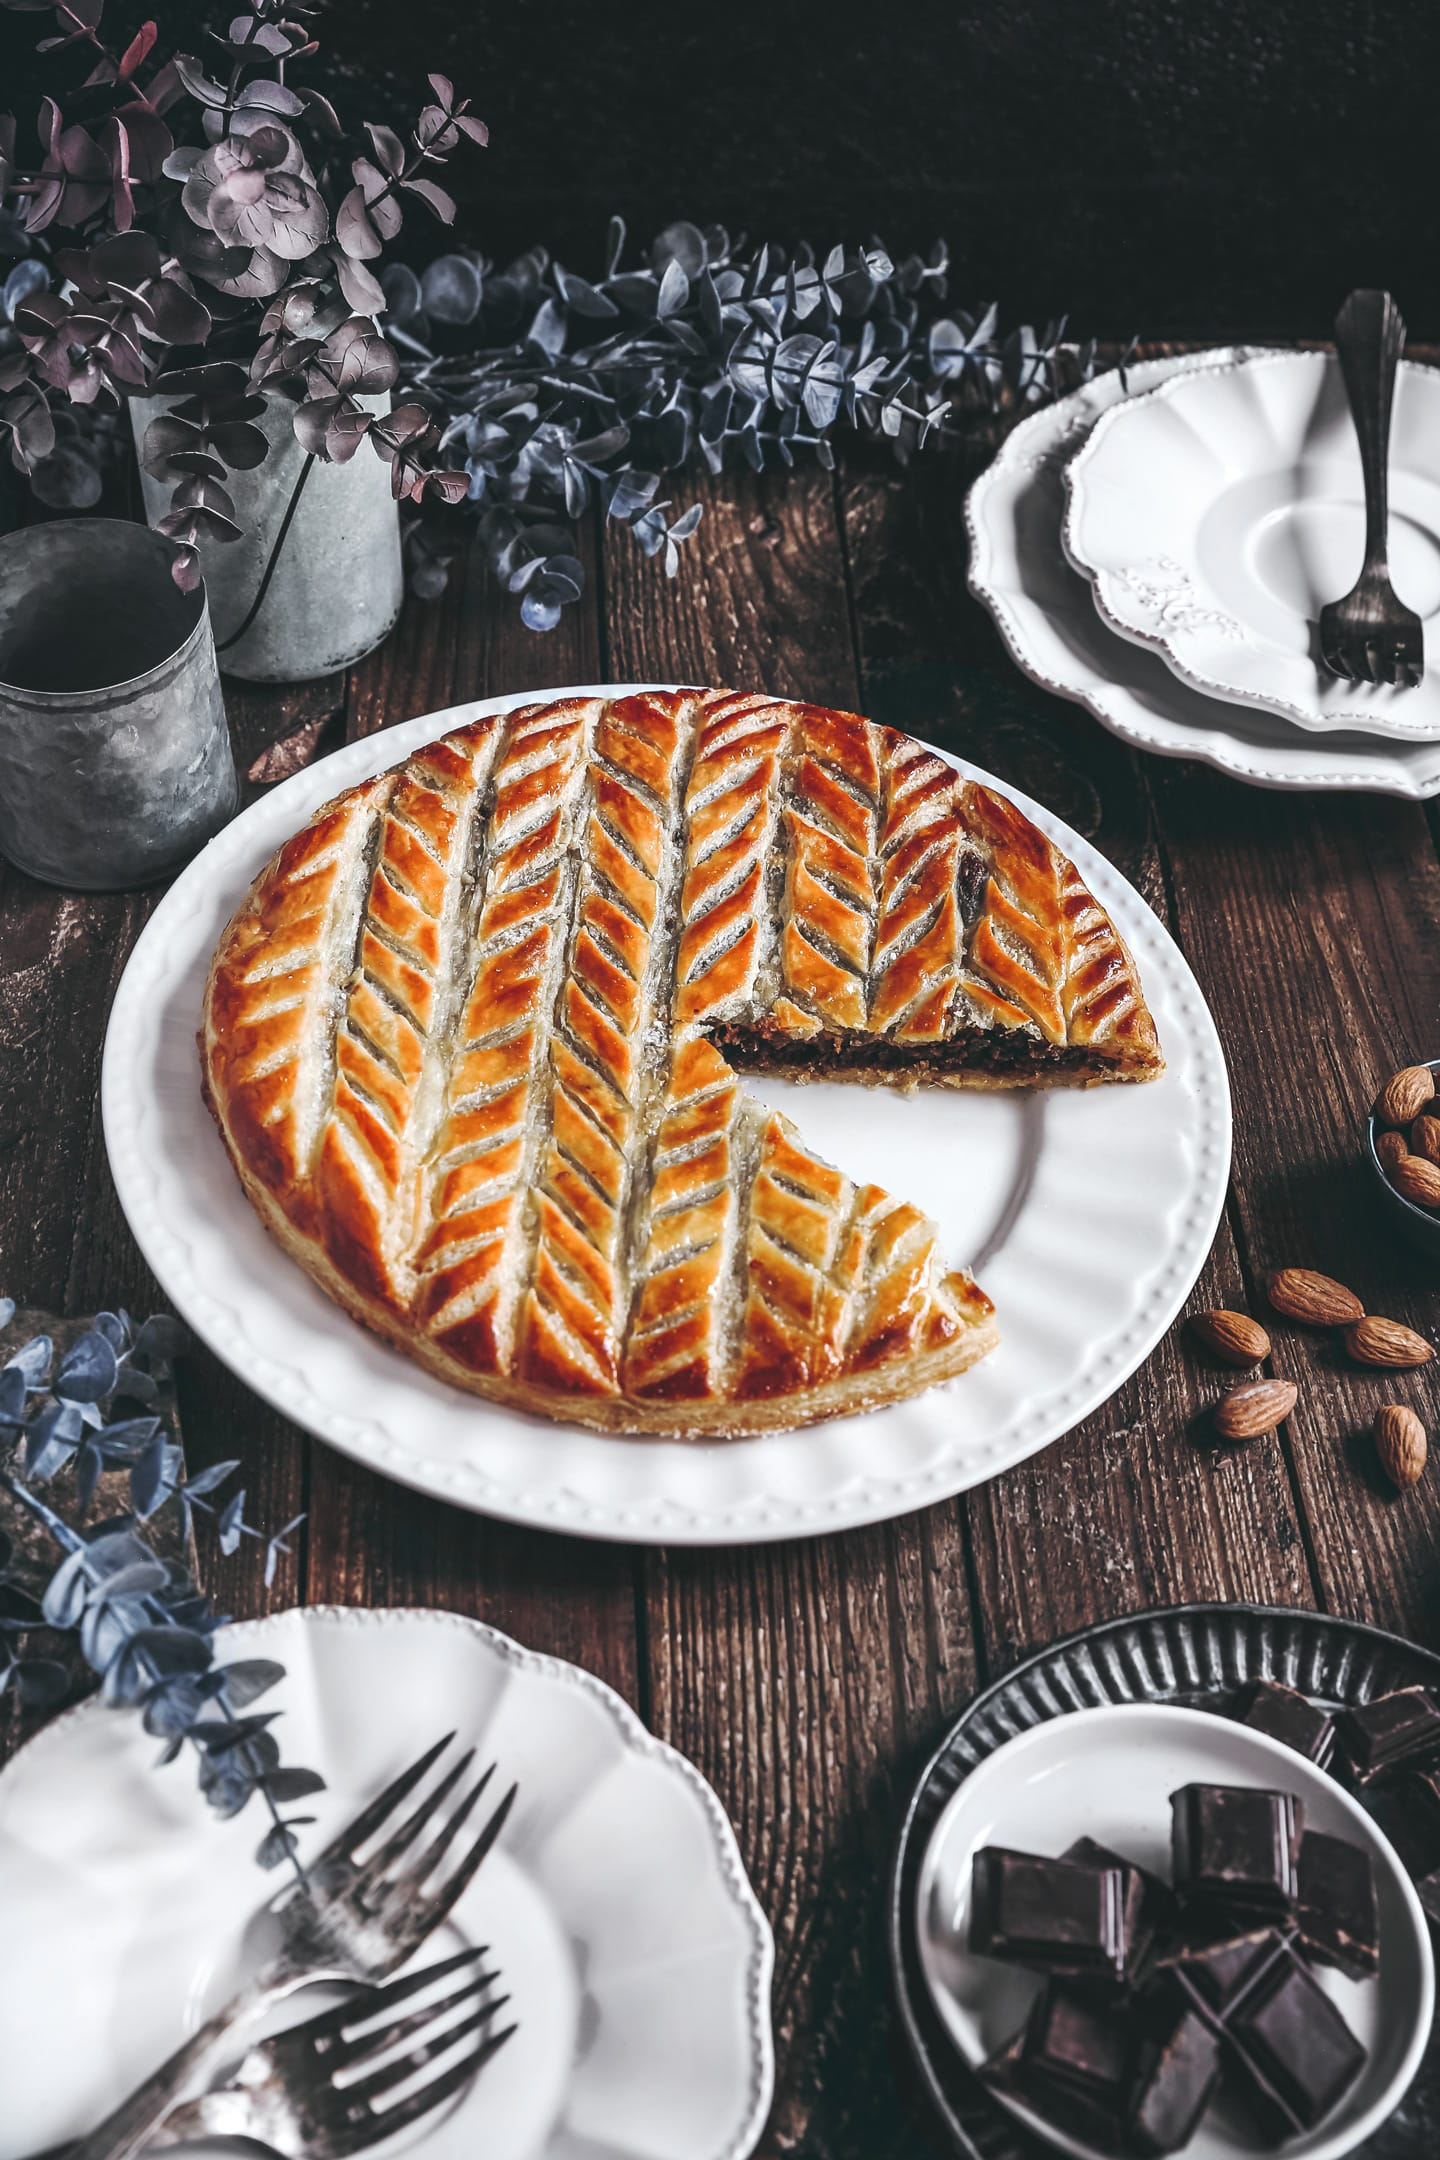 French chocolate galette des rois